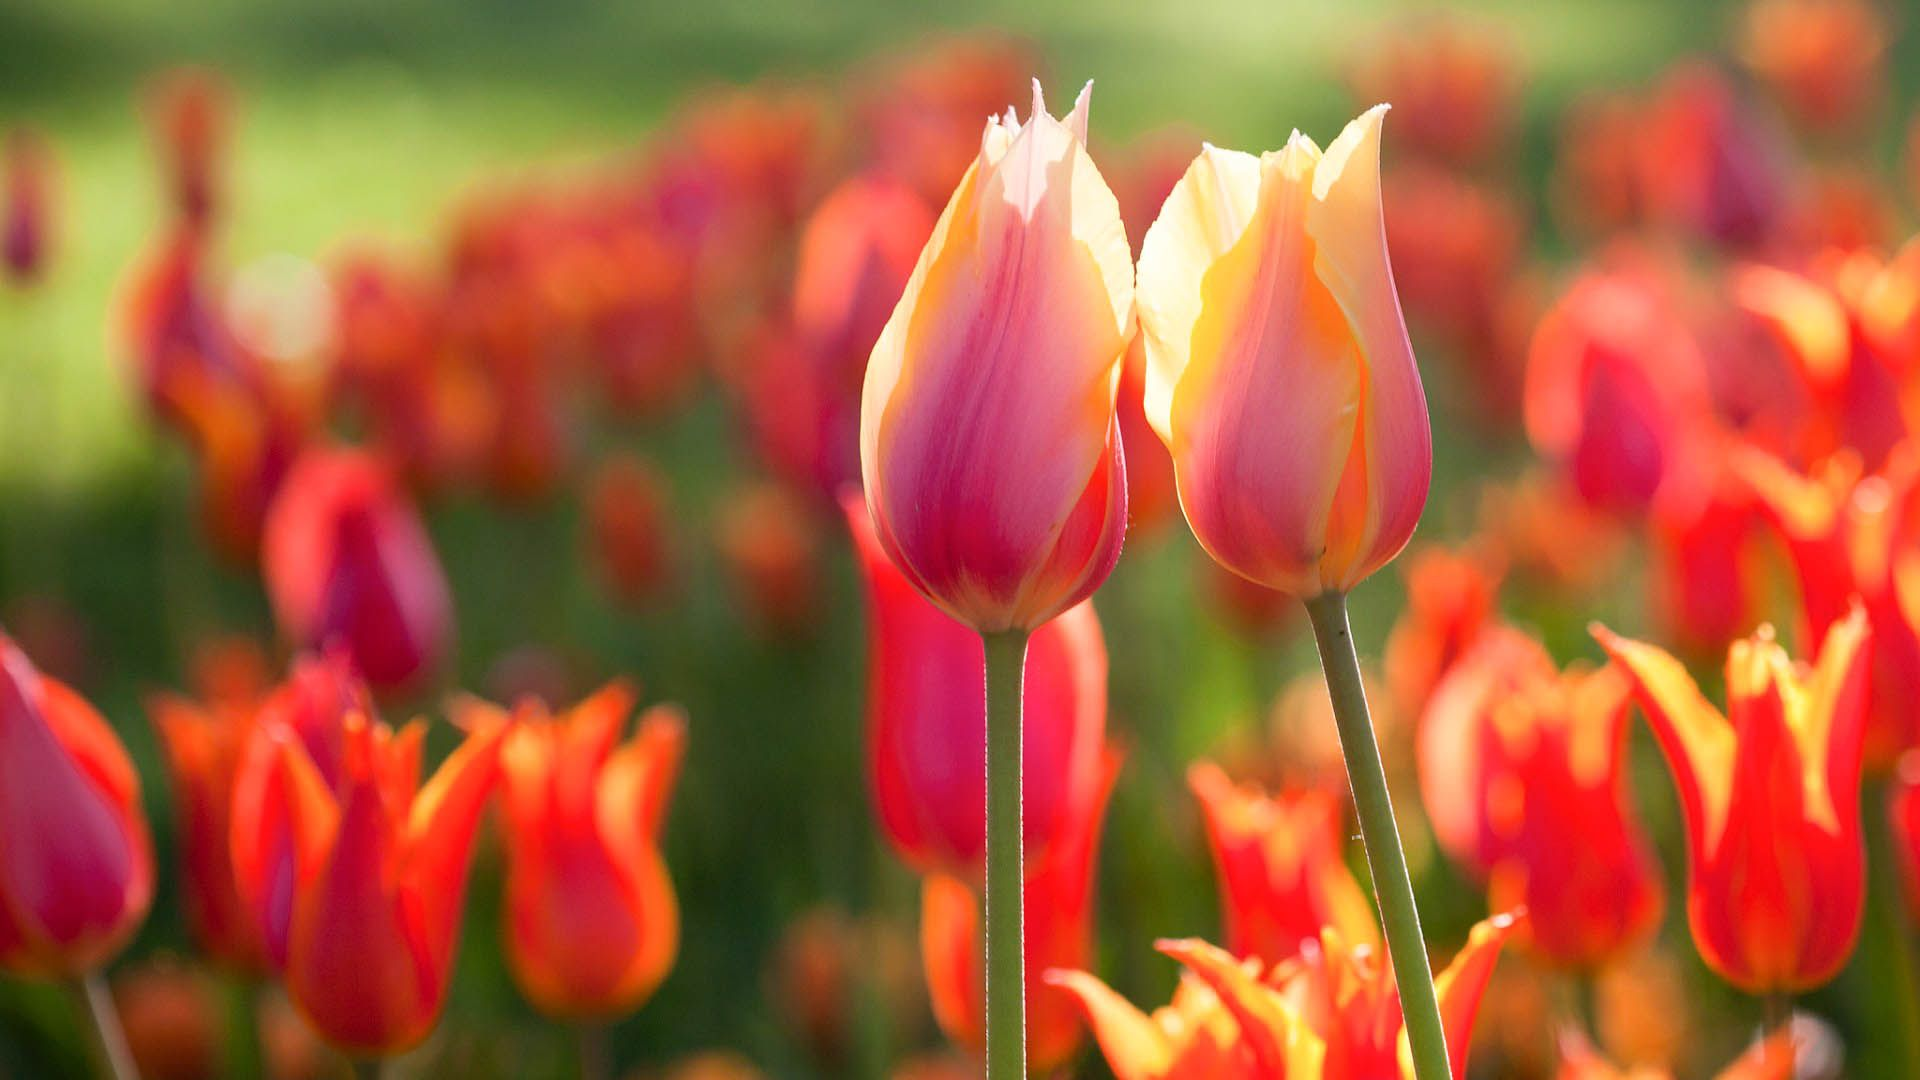 Tulip Flower High Resolution Hd Wallpapers 2015 All Hd Wallpapers Tulips Flowers Orange Tulips Flowers